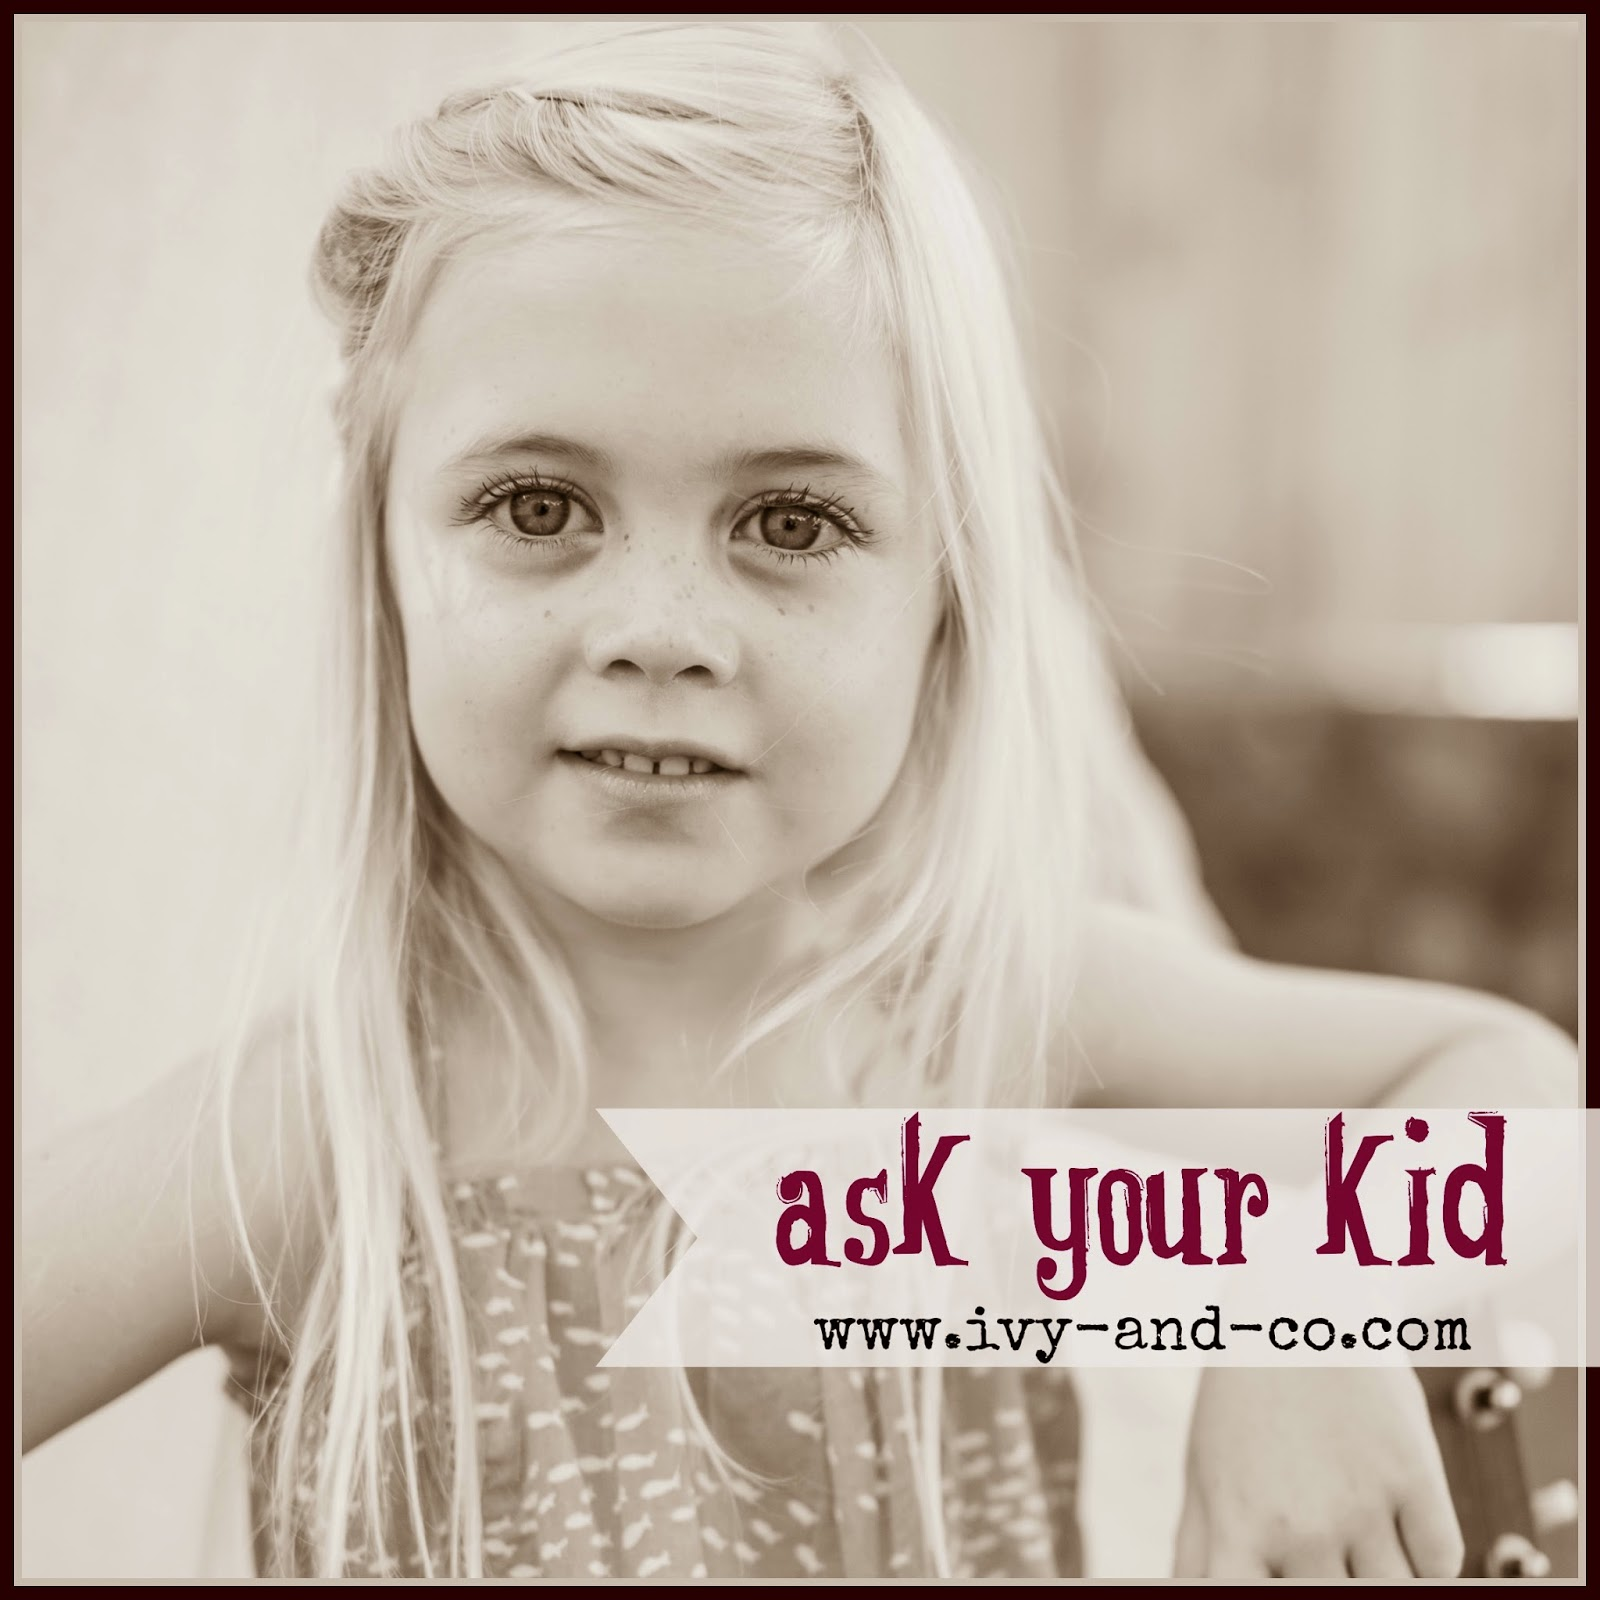 ask your kid - conversation starters - parent child relationship building